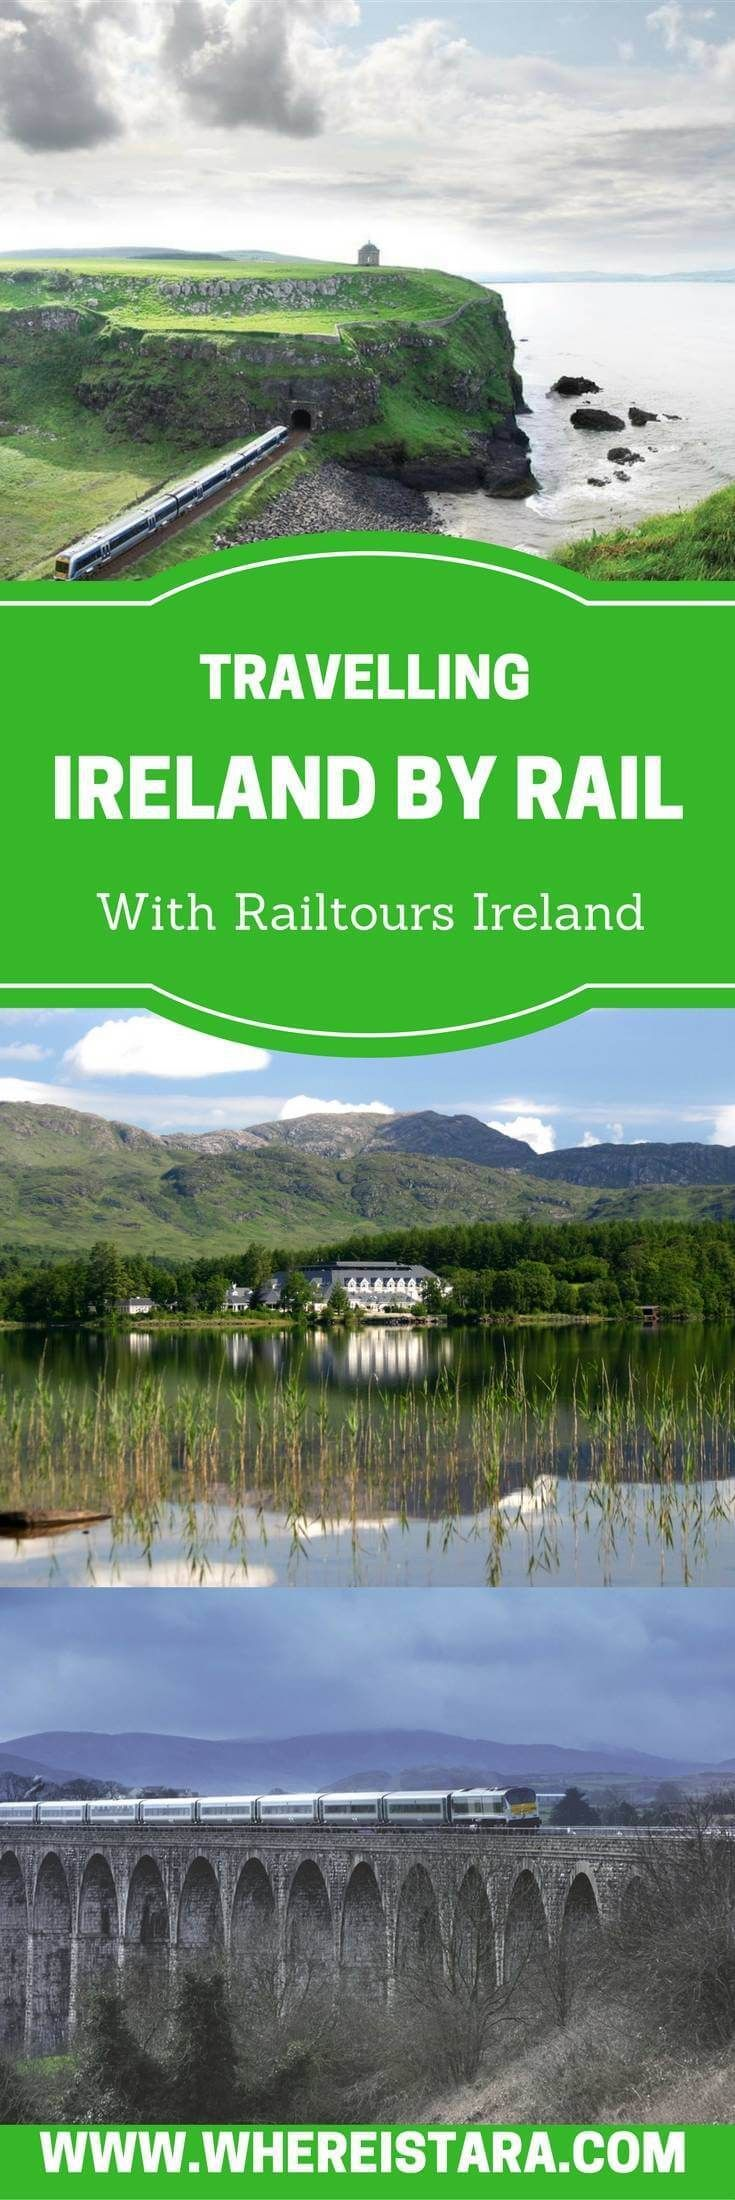 Ever thought about travelling Ireland by rail? I took a trip up to Northern Ireland and Donegal and Sligo with Railtours Ireland. We visited Belfast, the Titanic Centre, the Peace Wall and more.